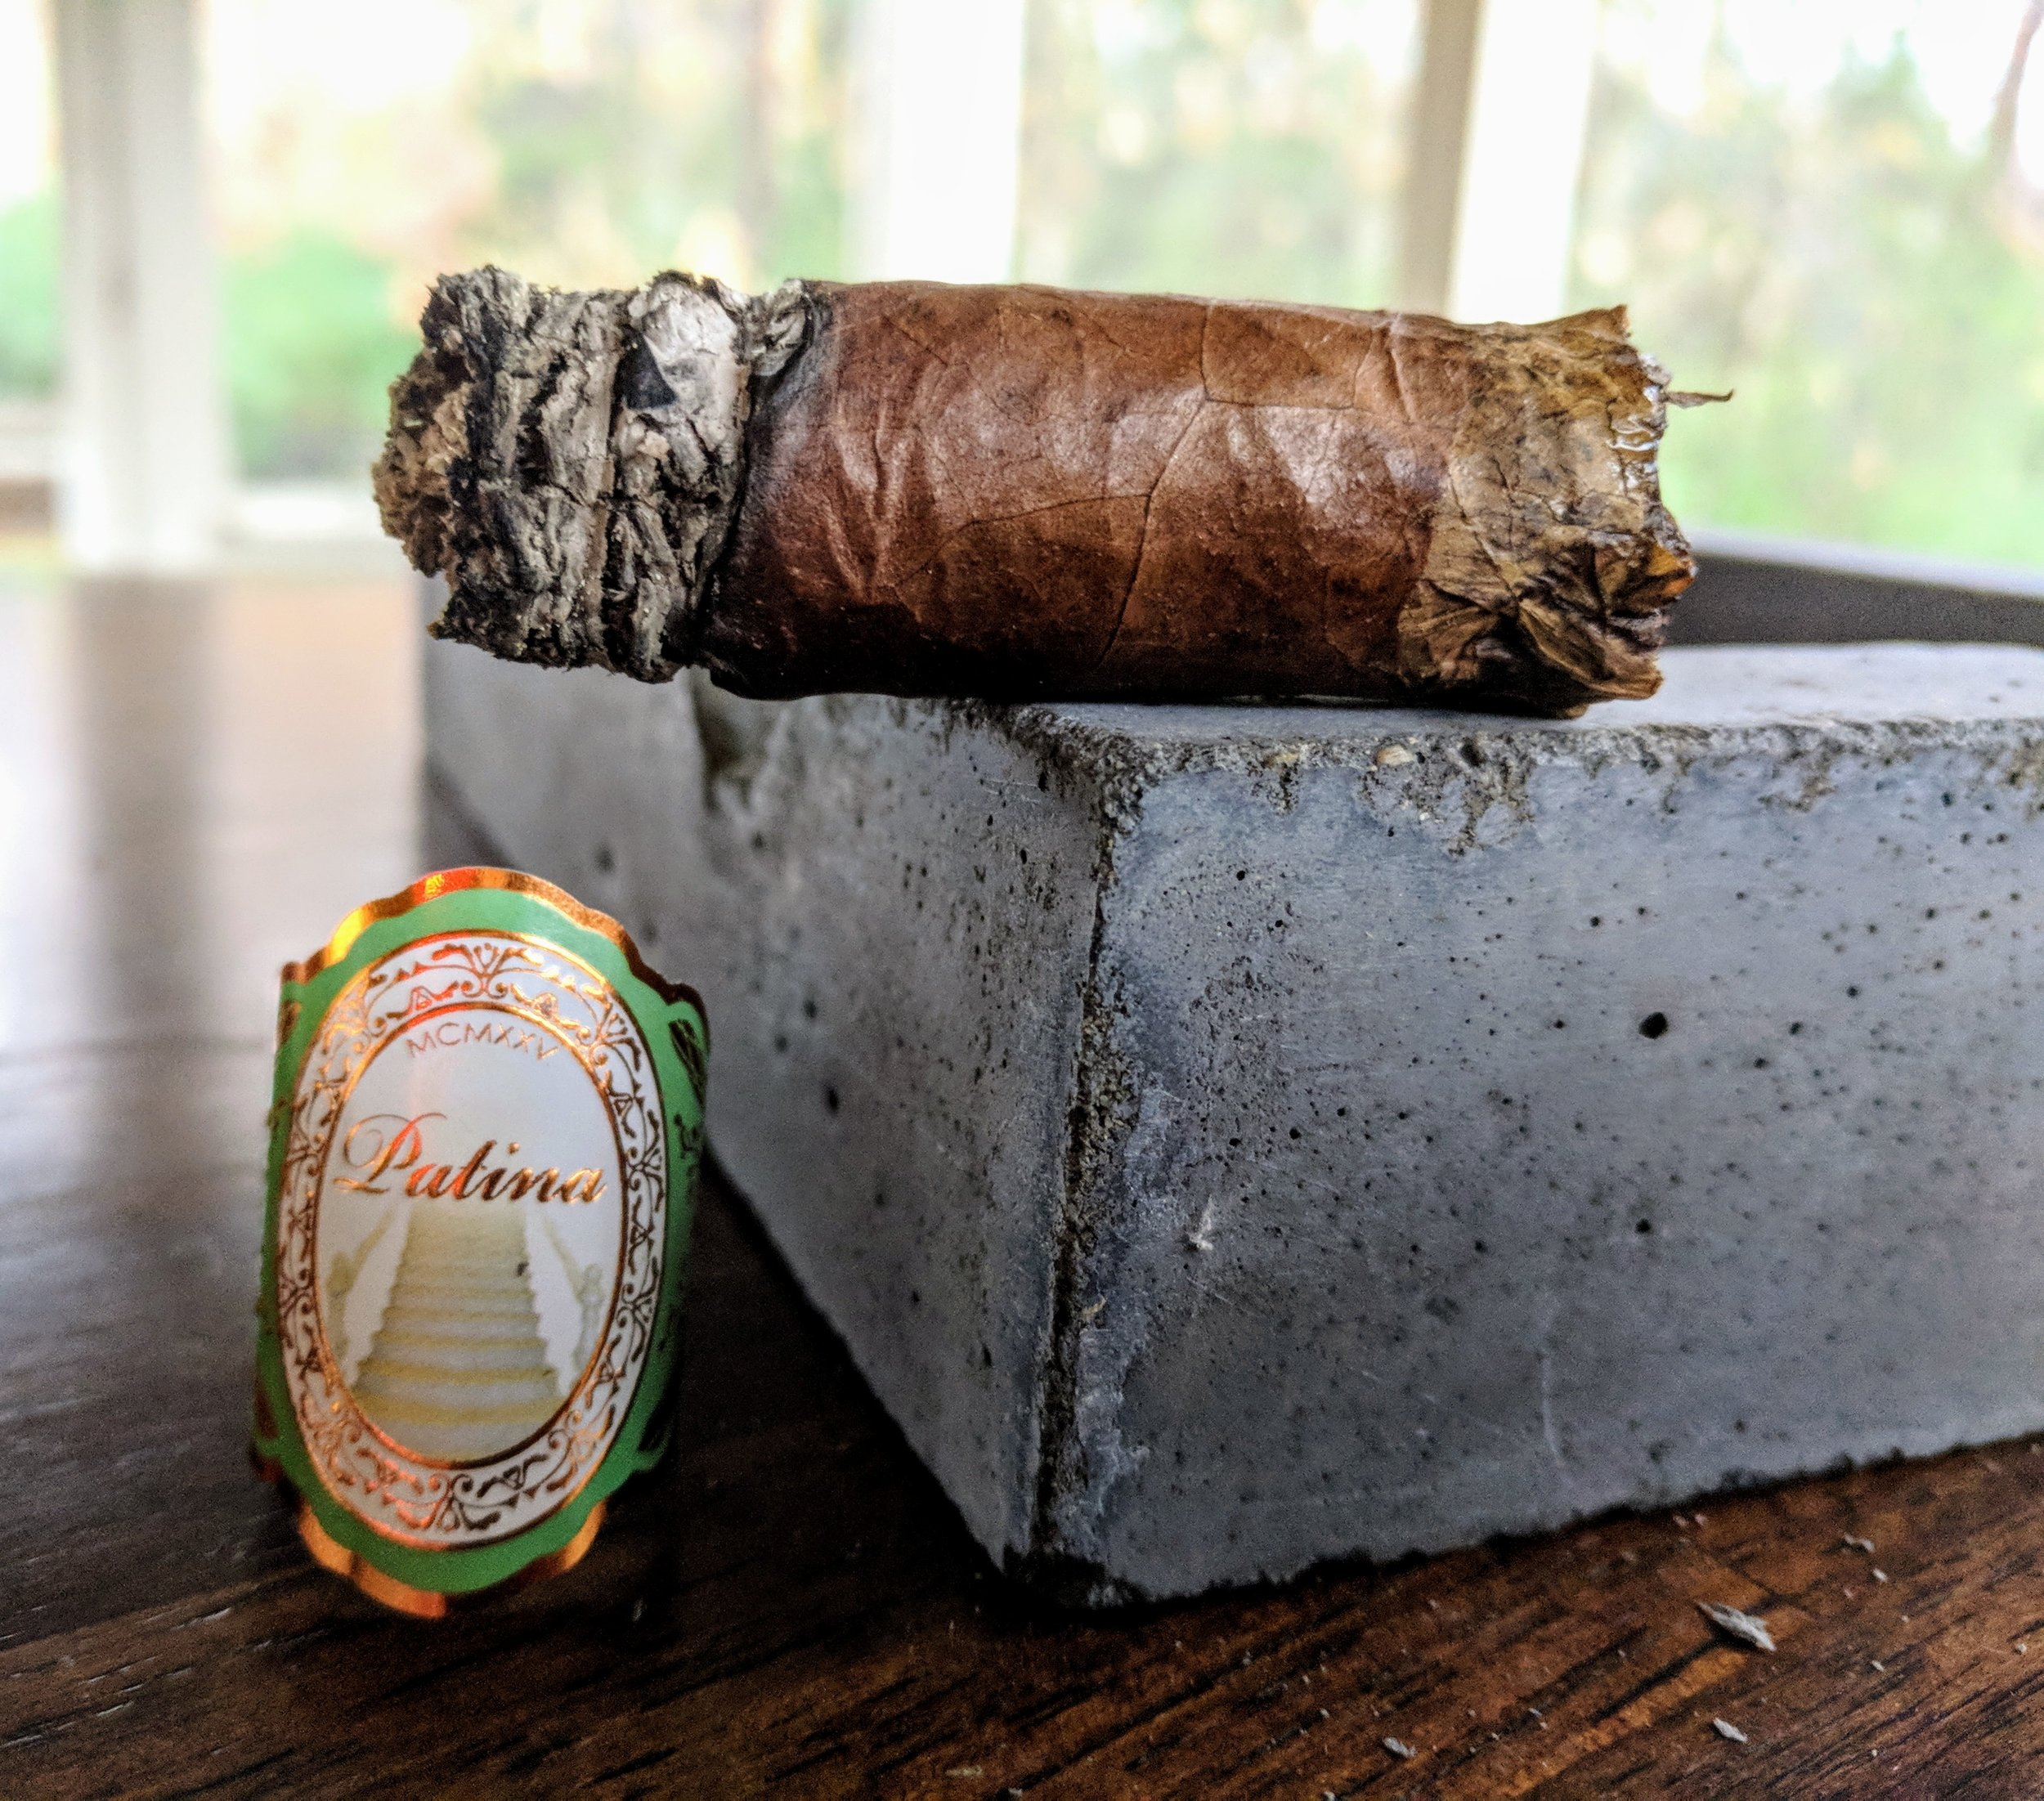 A nice patina.               8.1 / 10.0 - Patina's Habano blend was my introduction to the brand and it certainly did not fall short. The toro started flavorful enough and always melded together to create a complex and perfectly balanced cigar. It had some expected cedar and spice but the cream, vanilla and orange zest were a welcome addition and really shined at the end.For the price, I feel like the Patina Habano really delivers and has earned my recommendation. I'm looking forward to seeing what the other blends and vitolas have to offer!